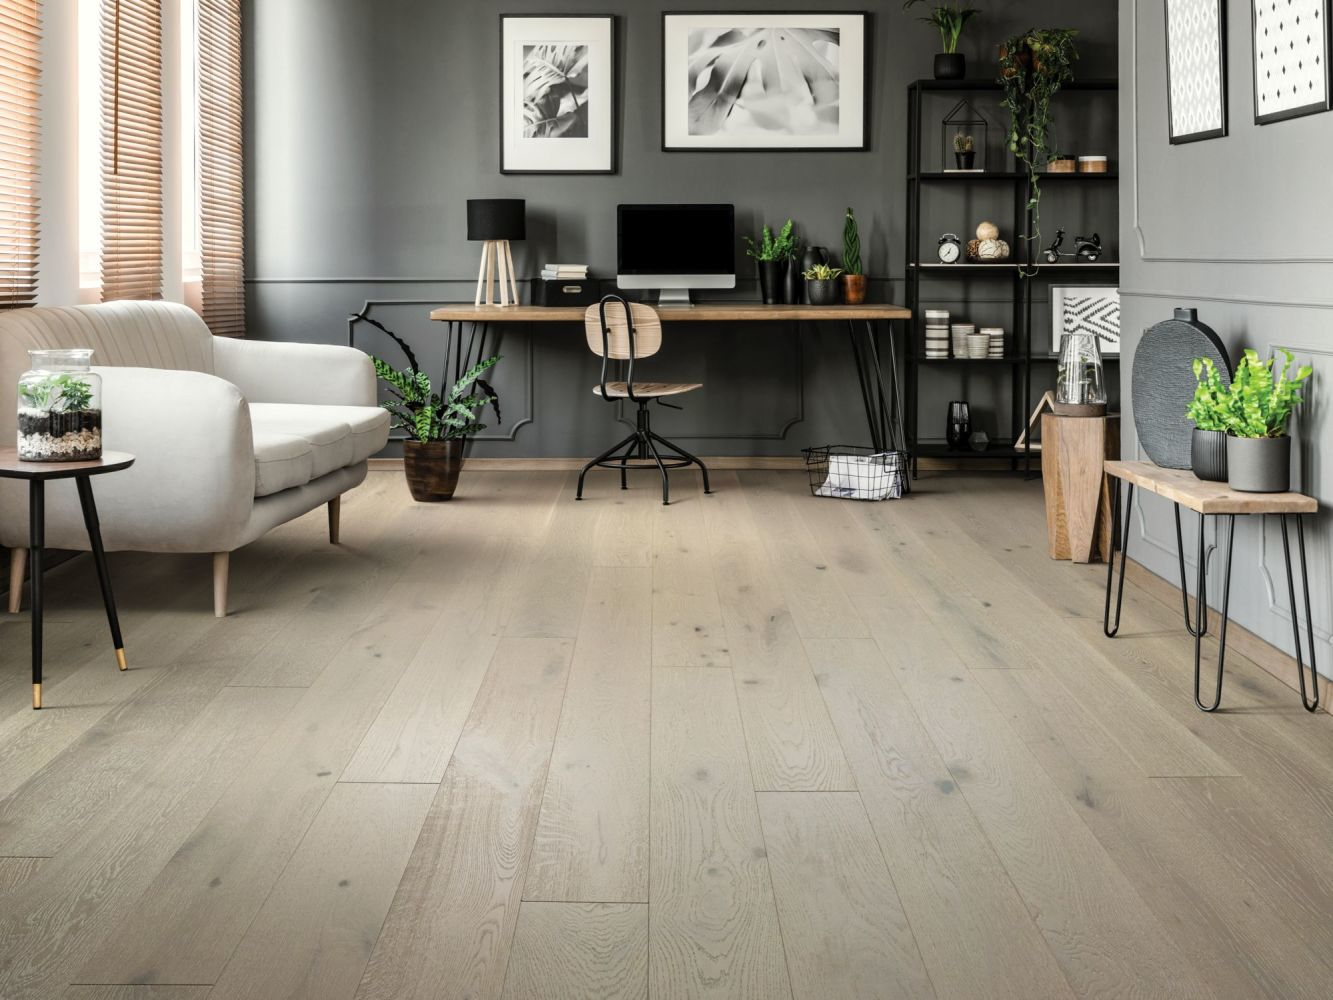 Shaw Floors Home Fn Gold Hardwood Perspectives Melody 01077_HW707